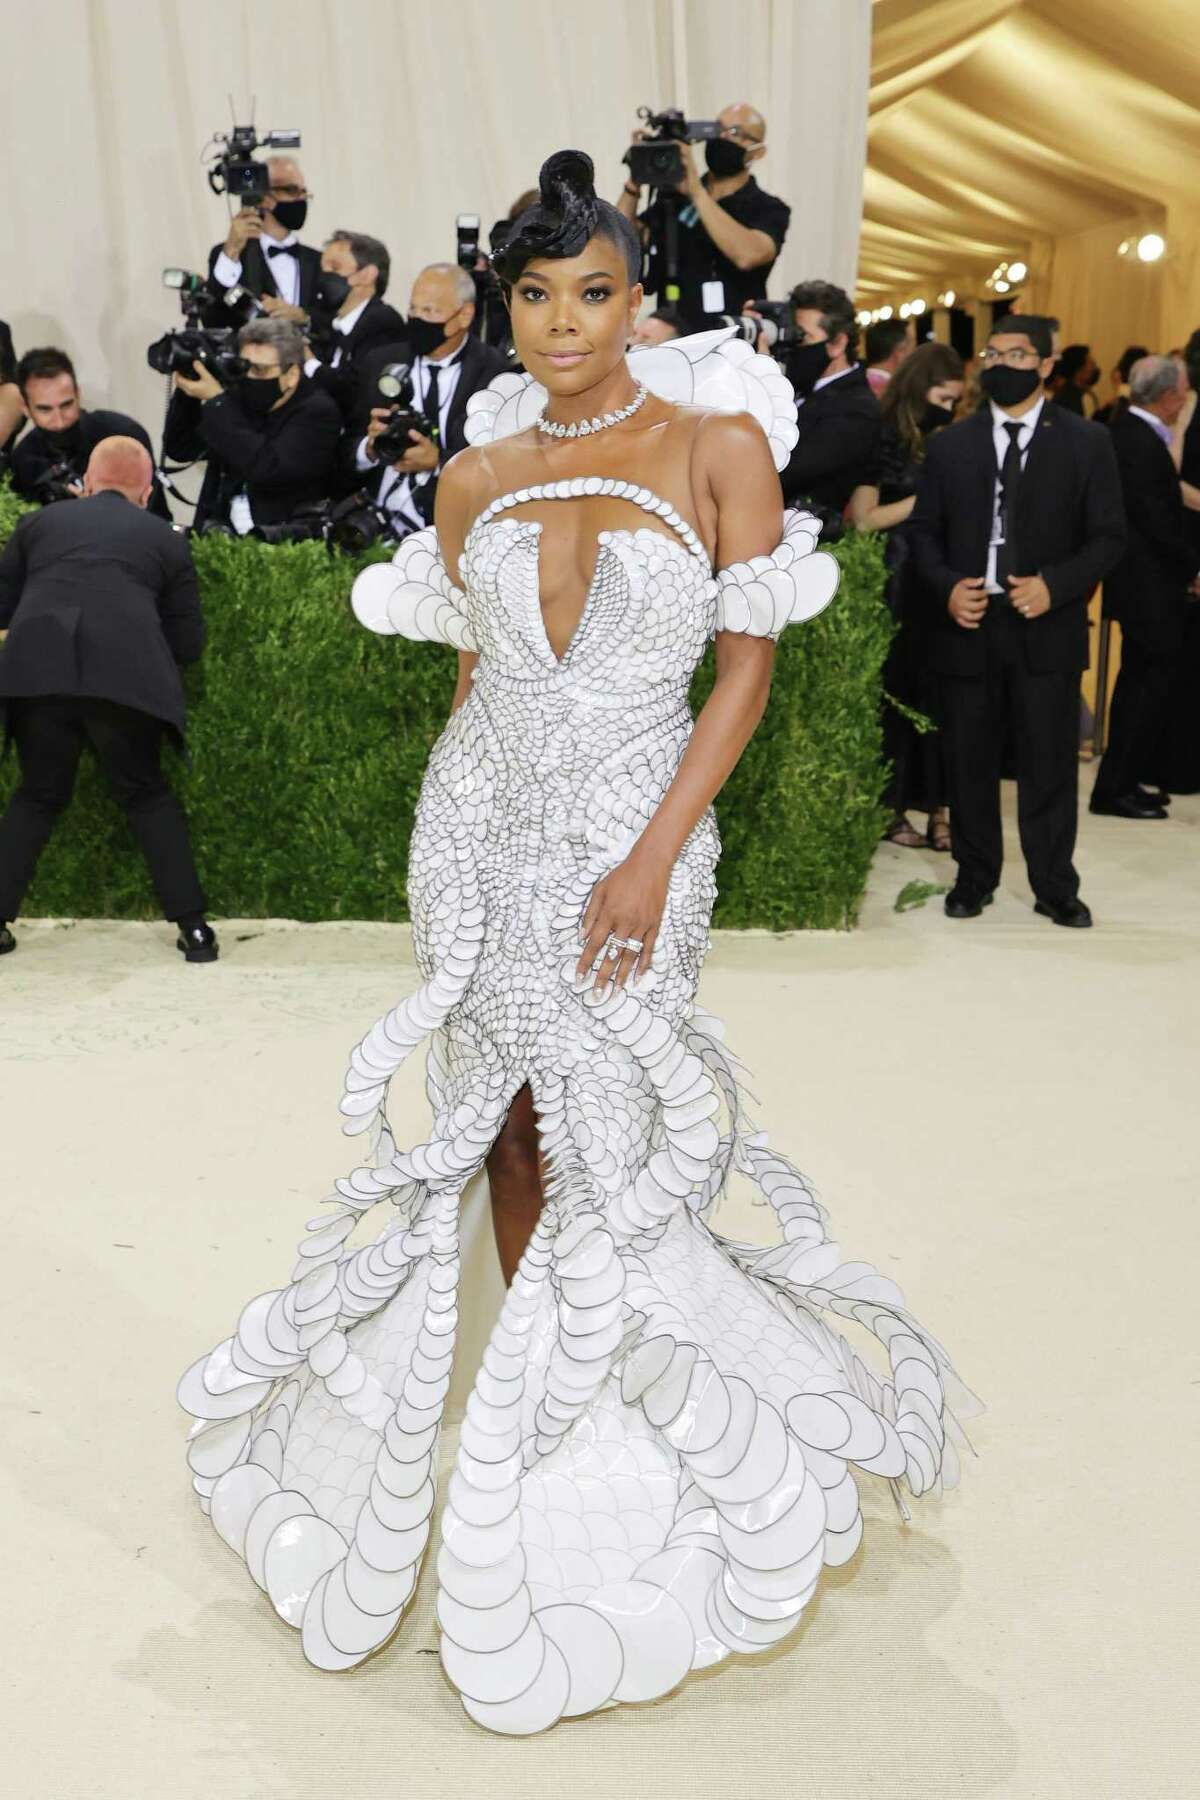 NEW YORK, NEW YORK - SEPTEMBER 13: Gabrielle Union attends The 2021 Met Gala Celebrating In America: A Lexicon Of Fashion at Metropolitan Museum of Art on September 13, 2021 in New York City. (Photo by Mike Coppola/Getty Images)